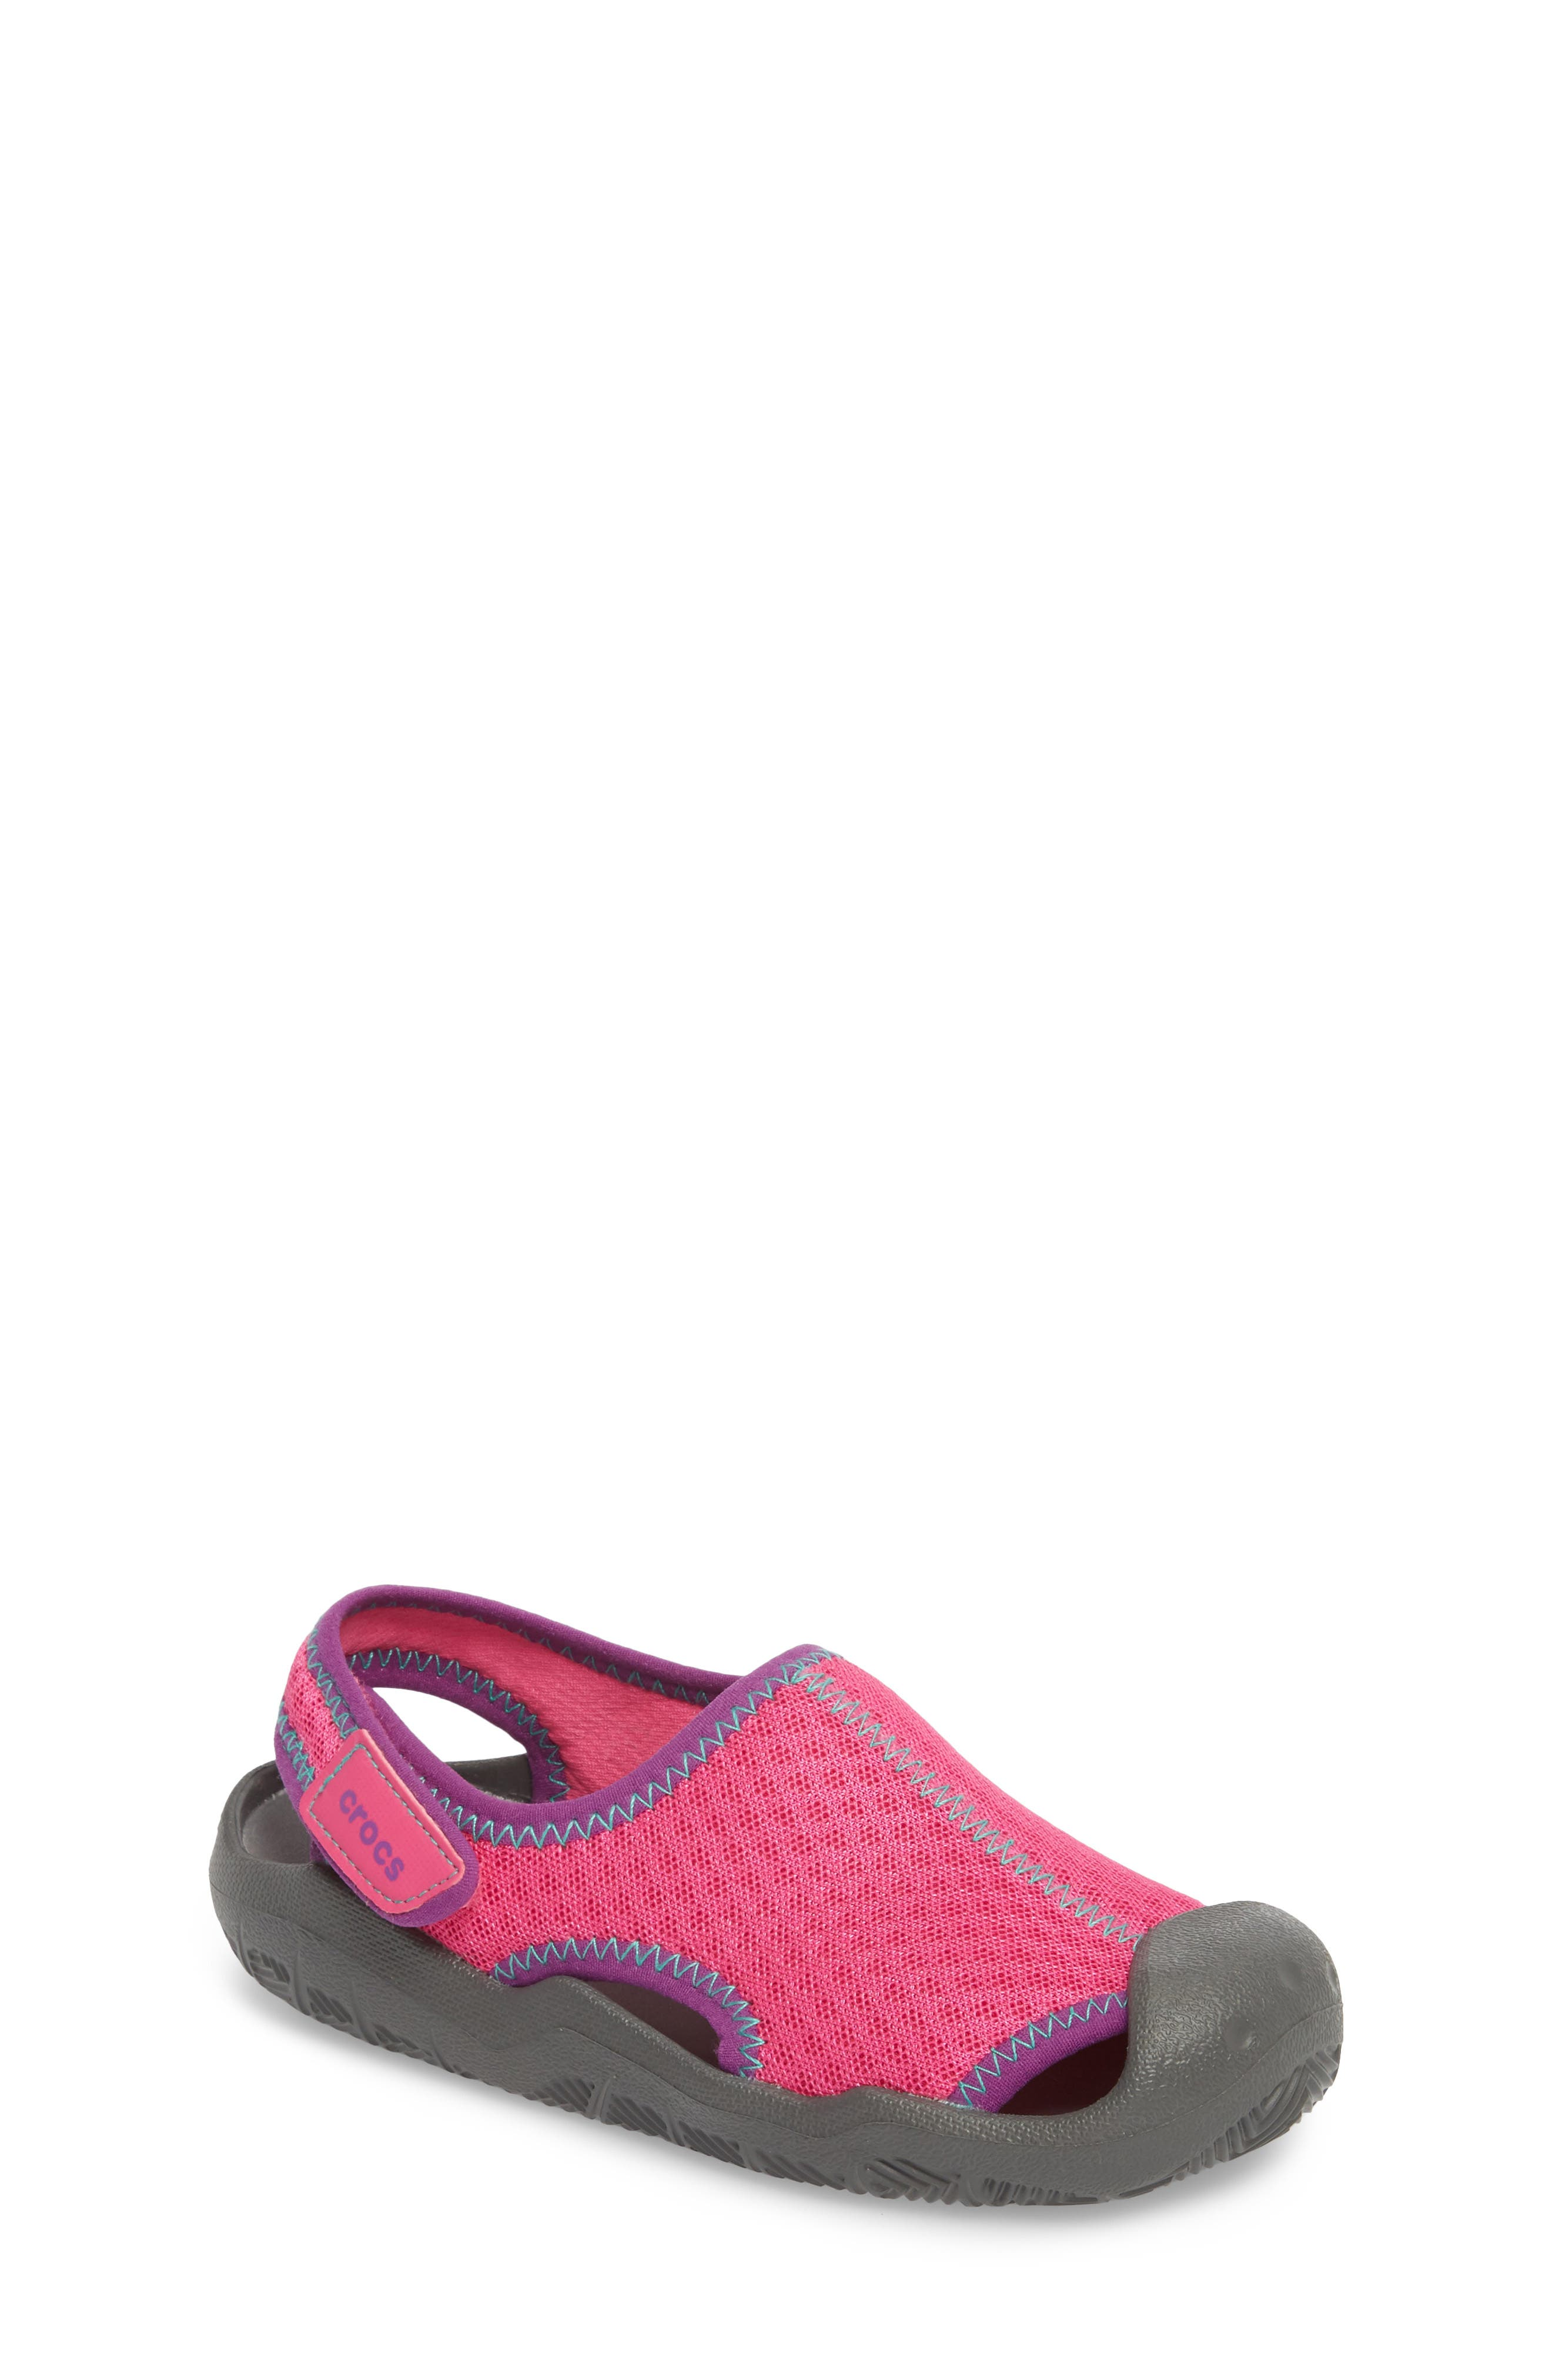 Swiftwater Sandal,                             Main thumbnail 1, color,                             Pink